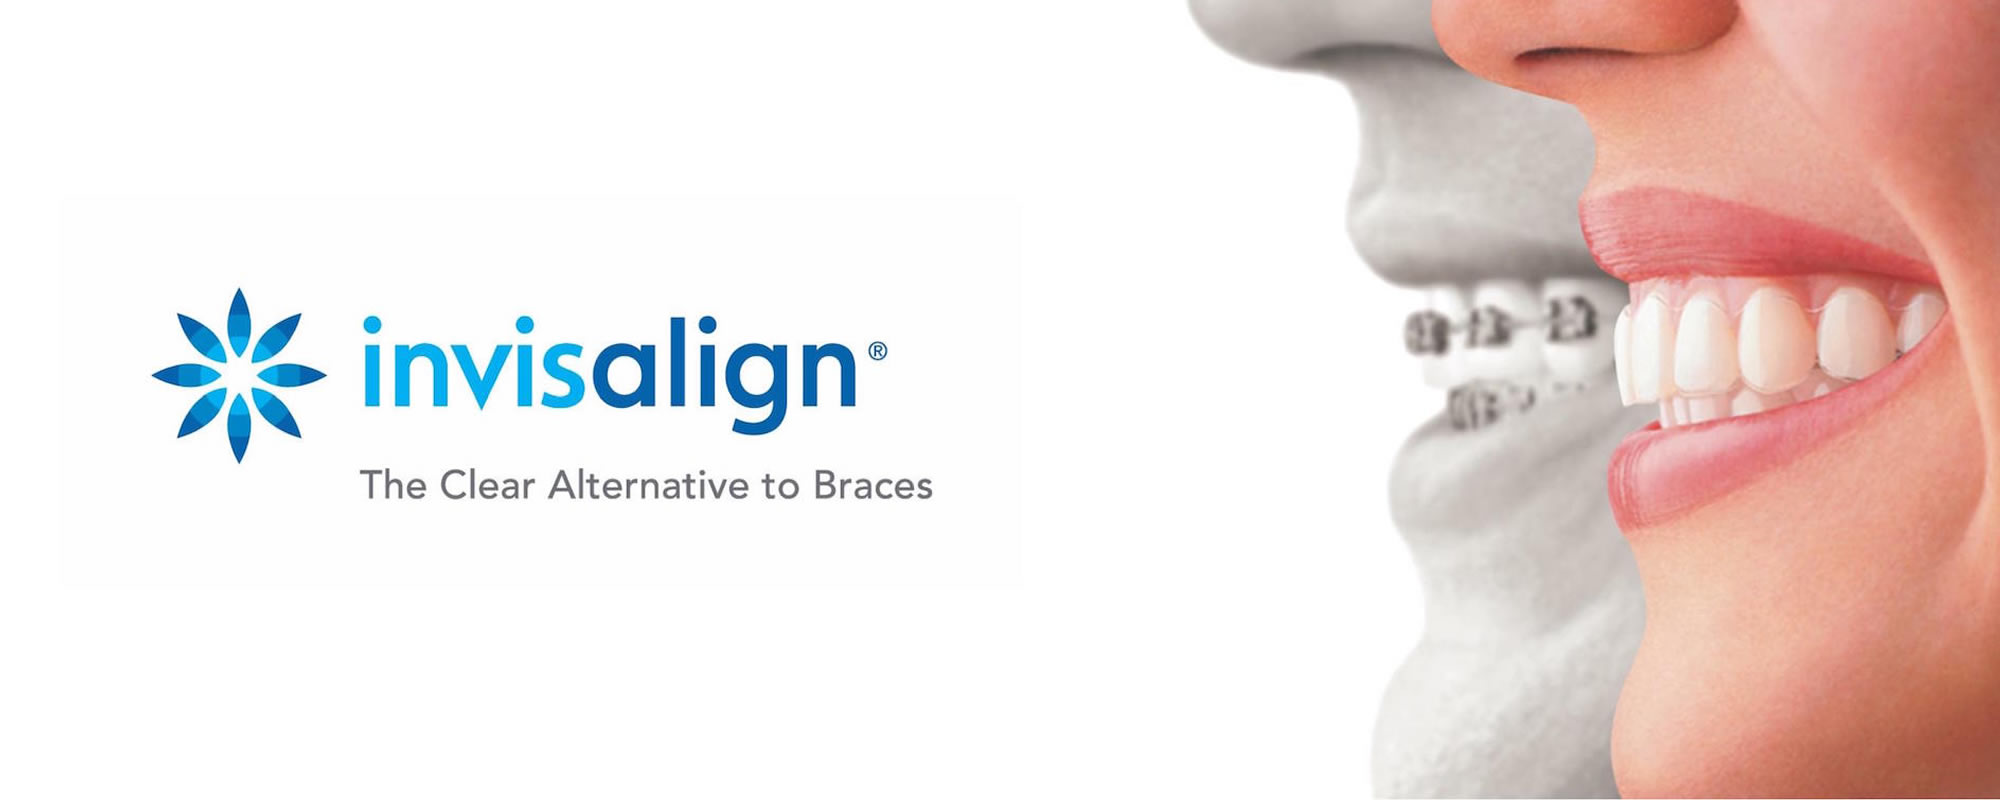 Invisalign Orthodontics Bexleyheath